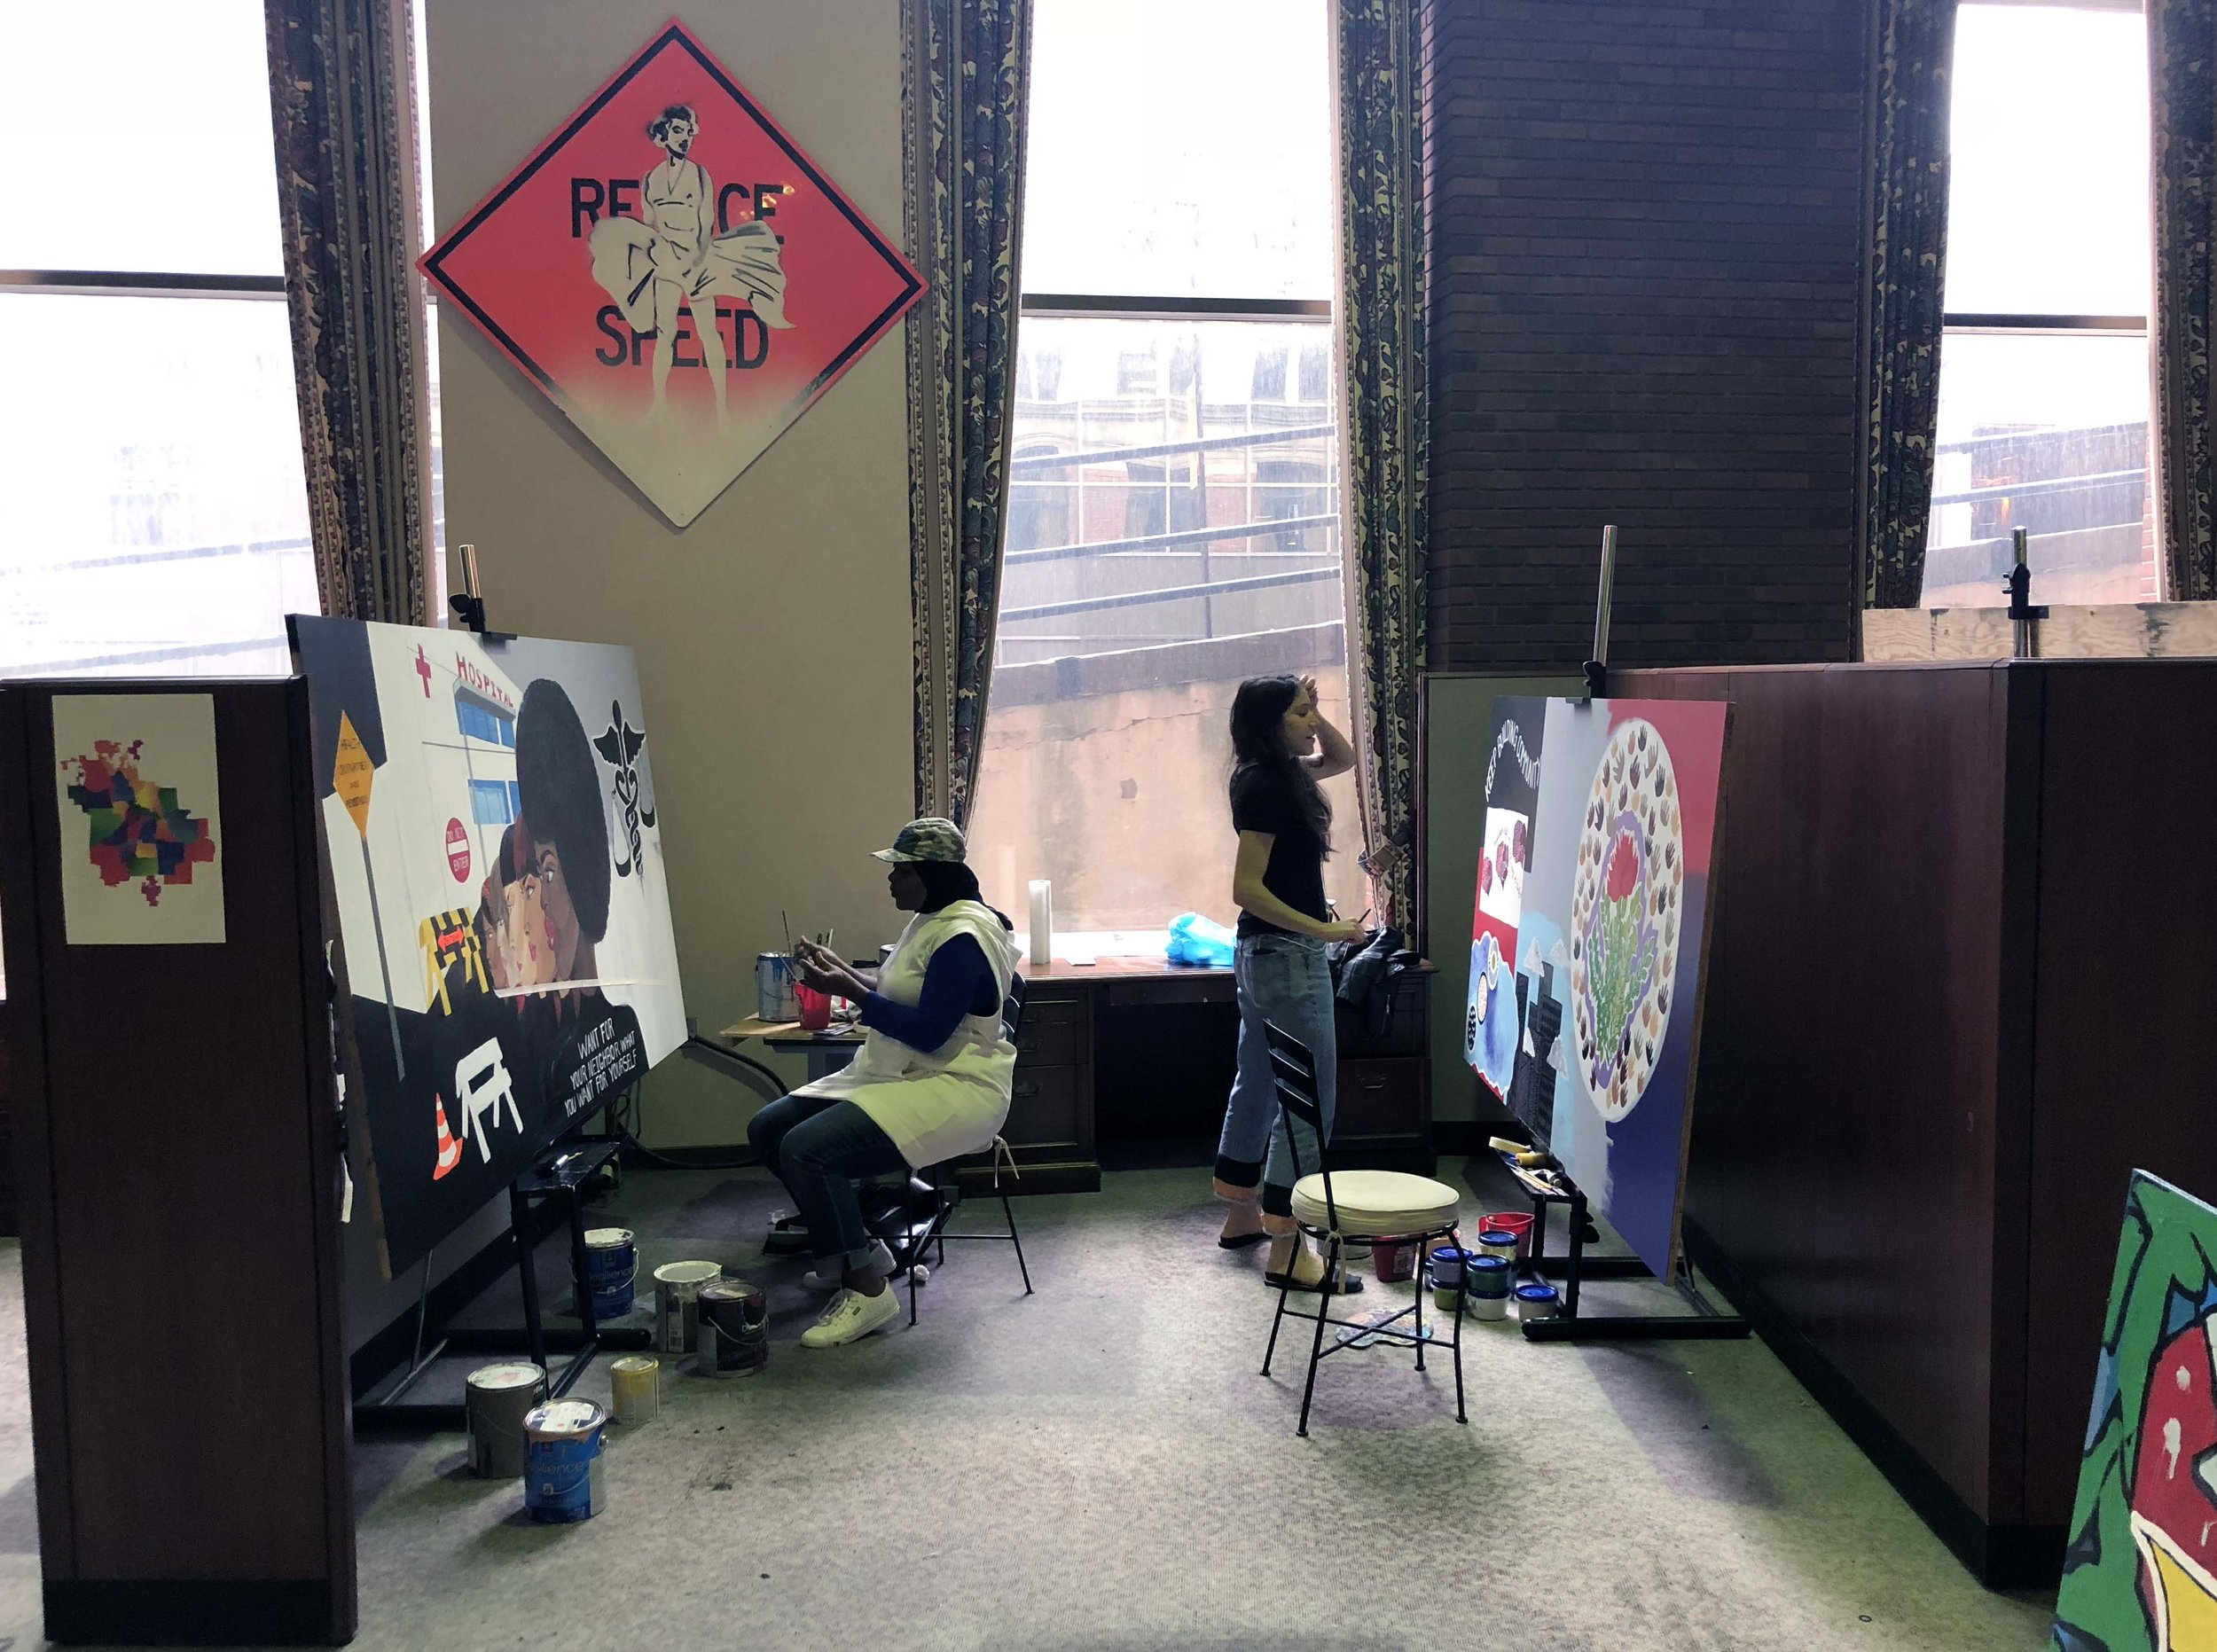 Nichole Epps and Anika Kent at work in our studio.